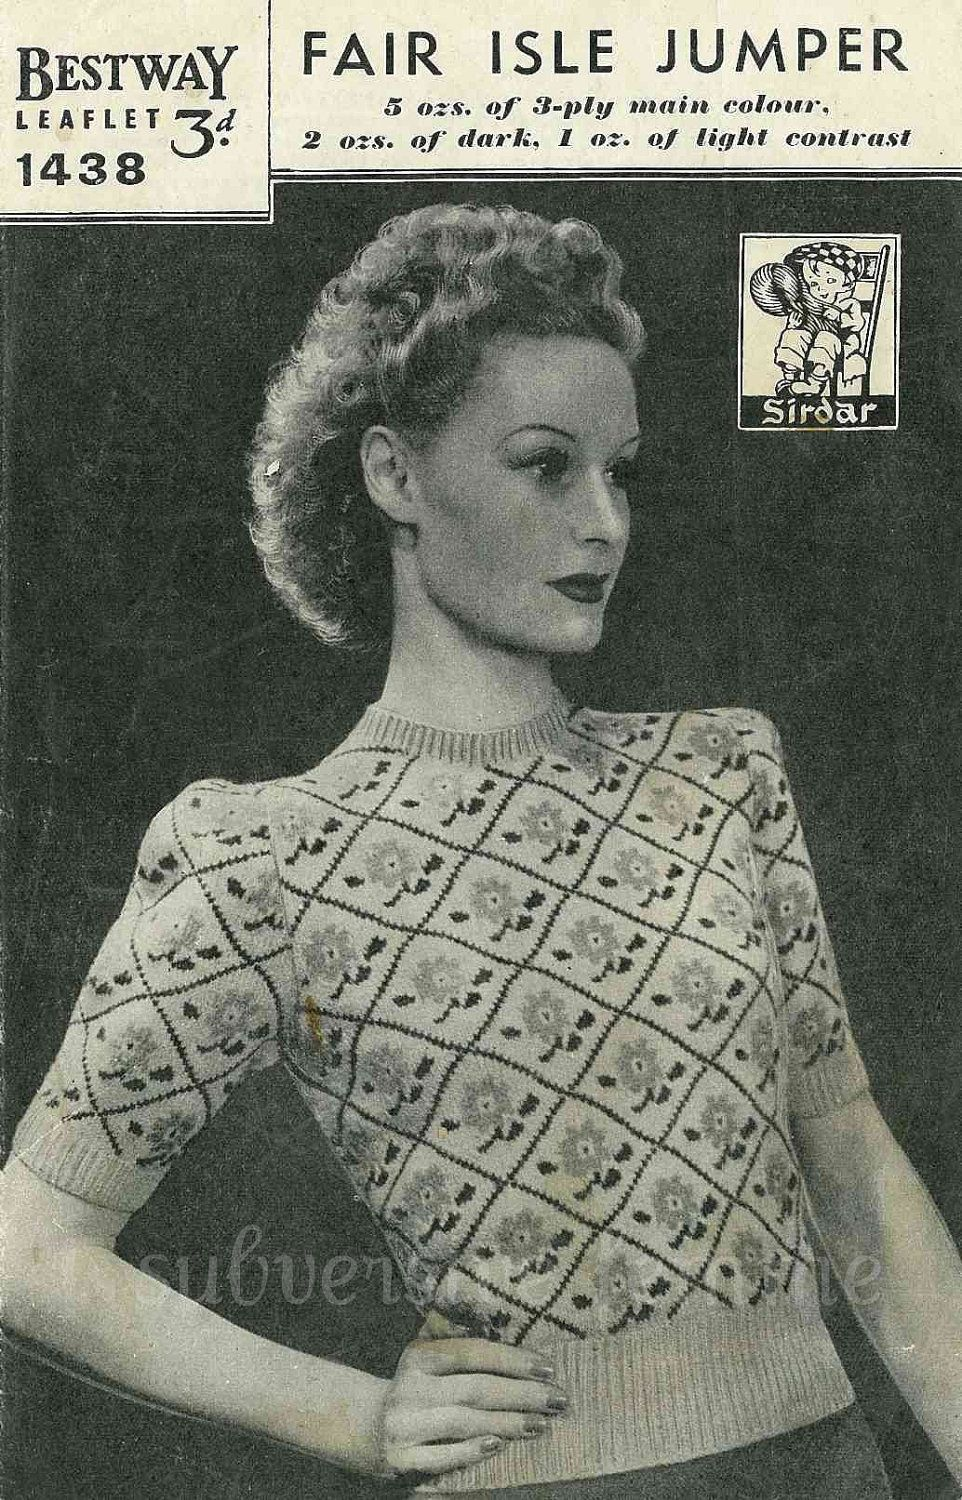 Land Girl Fair Isle Jumper from WWII, c. 1940s - vintage ...